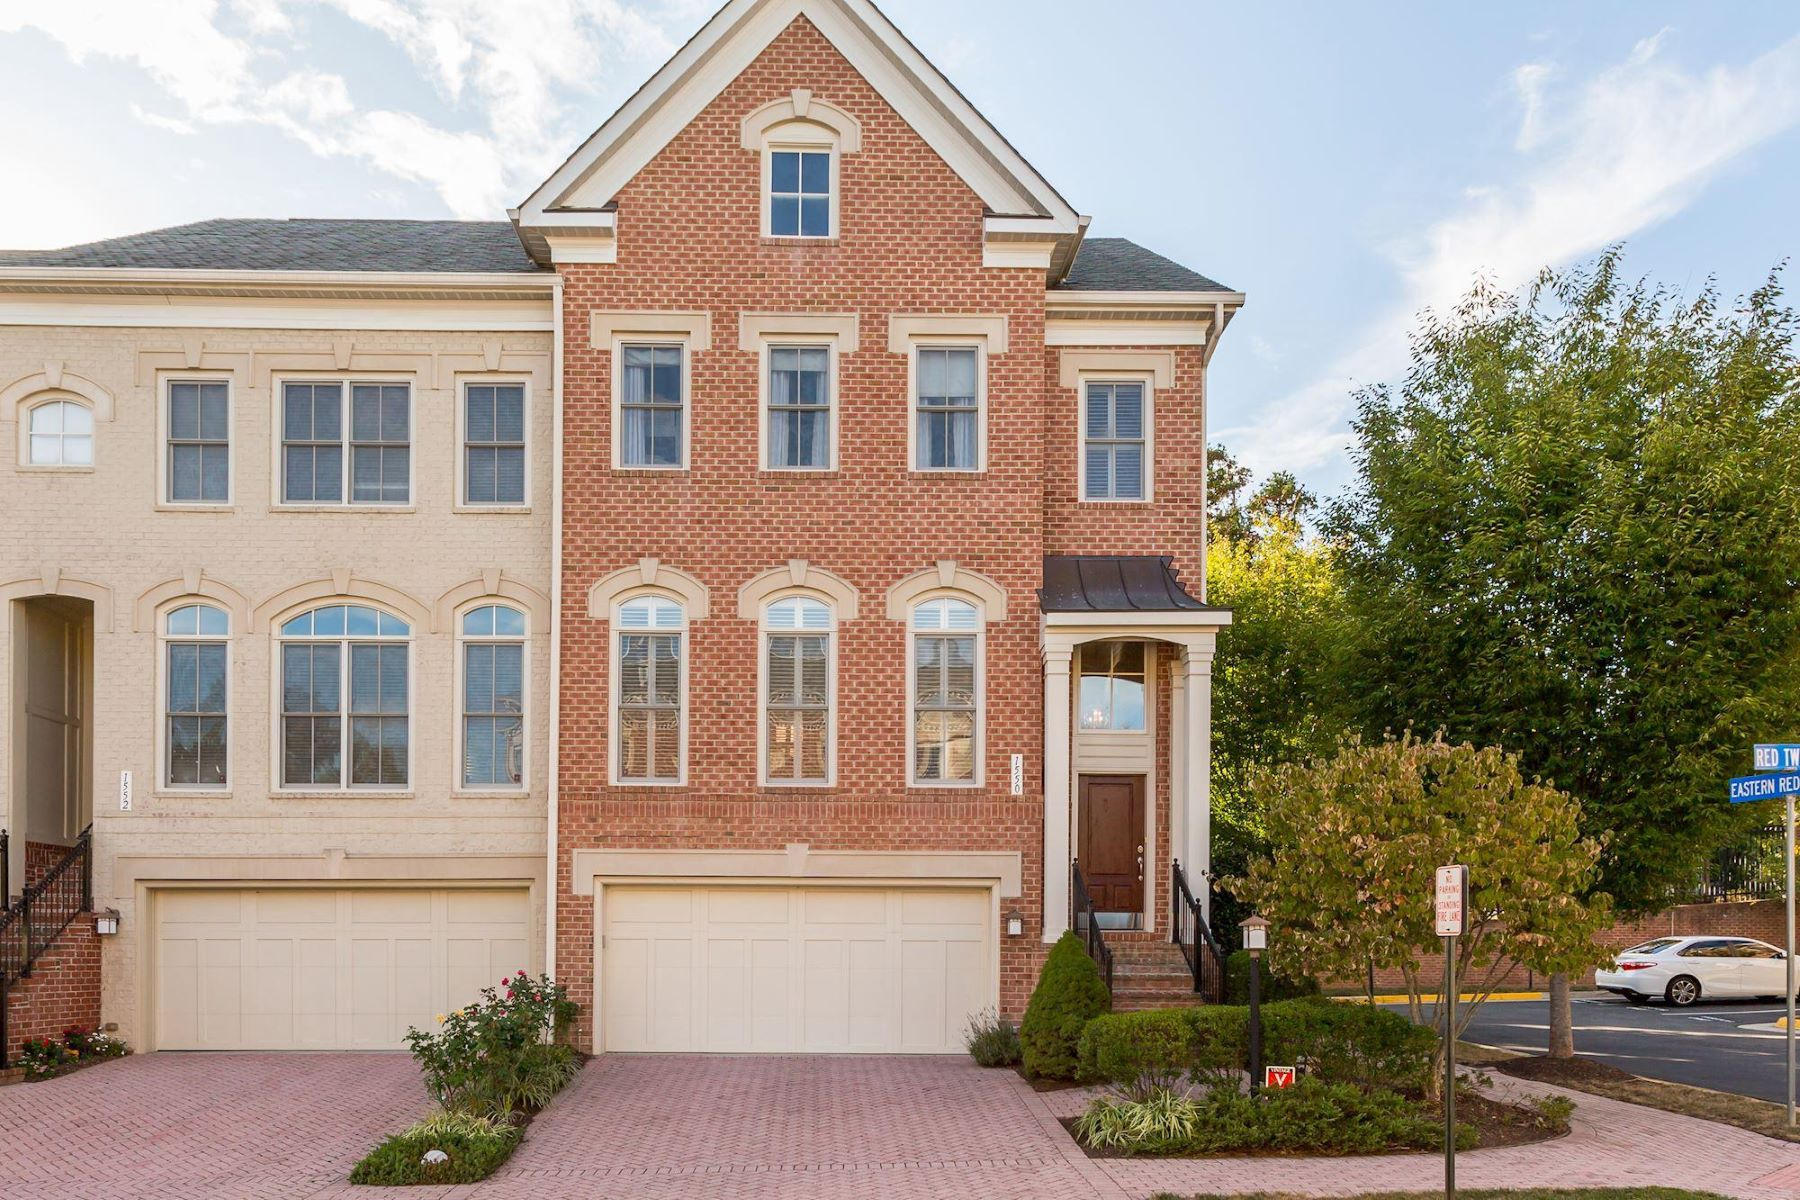 Property for Sale at 1550 Red Twig Ln McLean, Virginia 22101 United States